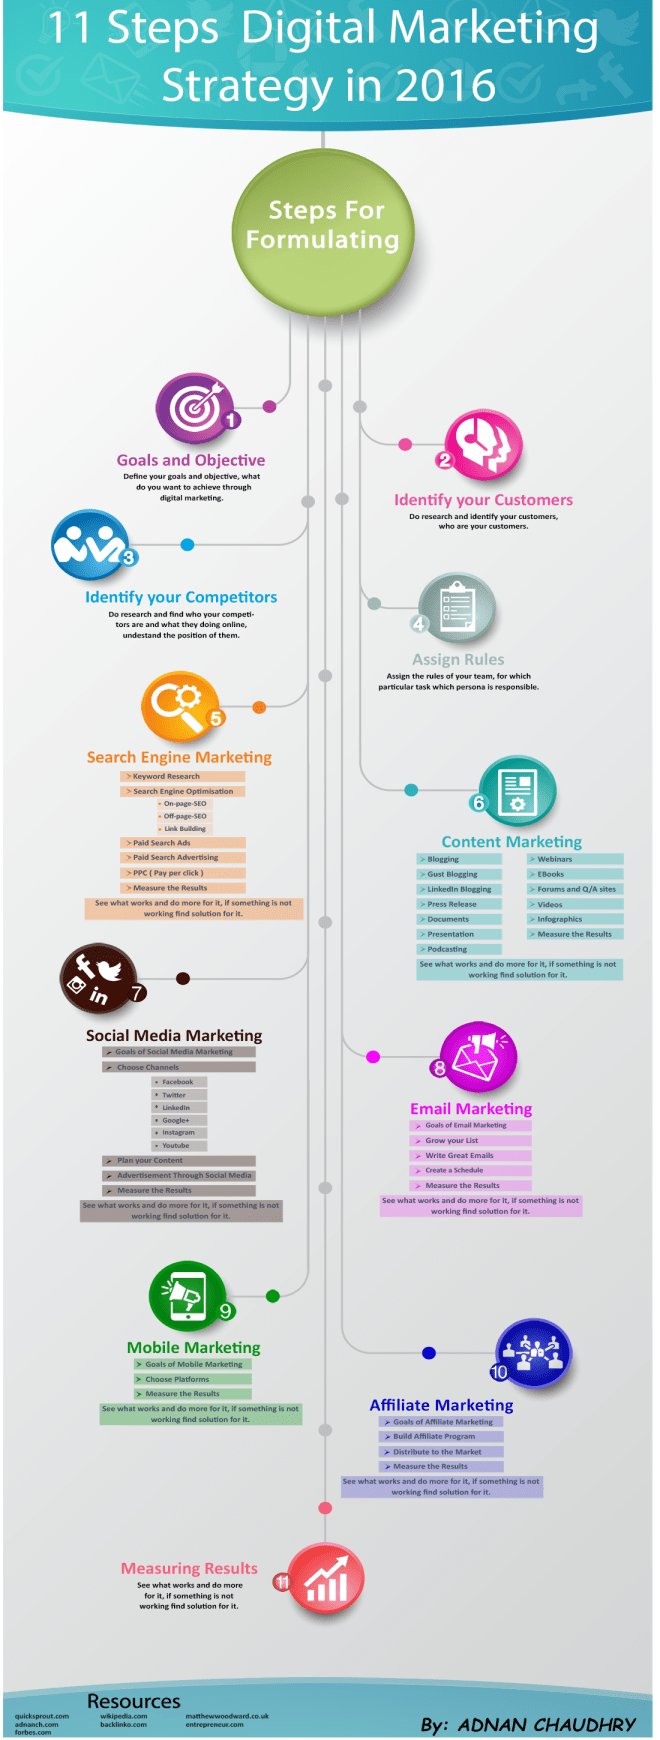 11 Steps Digital Marketing Strategy Infographics by Adnan Chaudhry